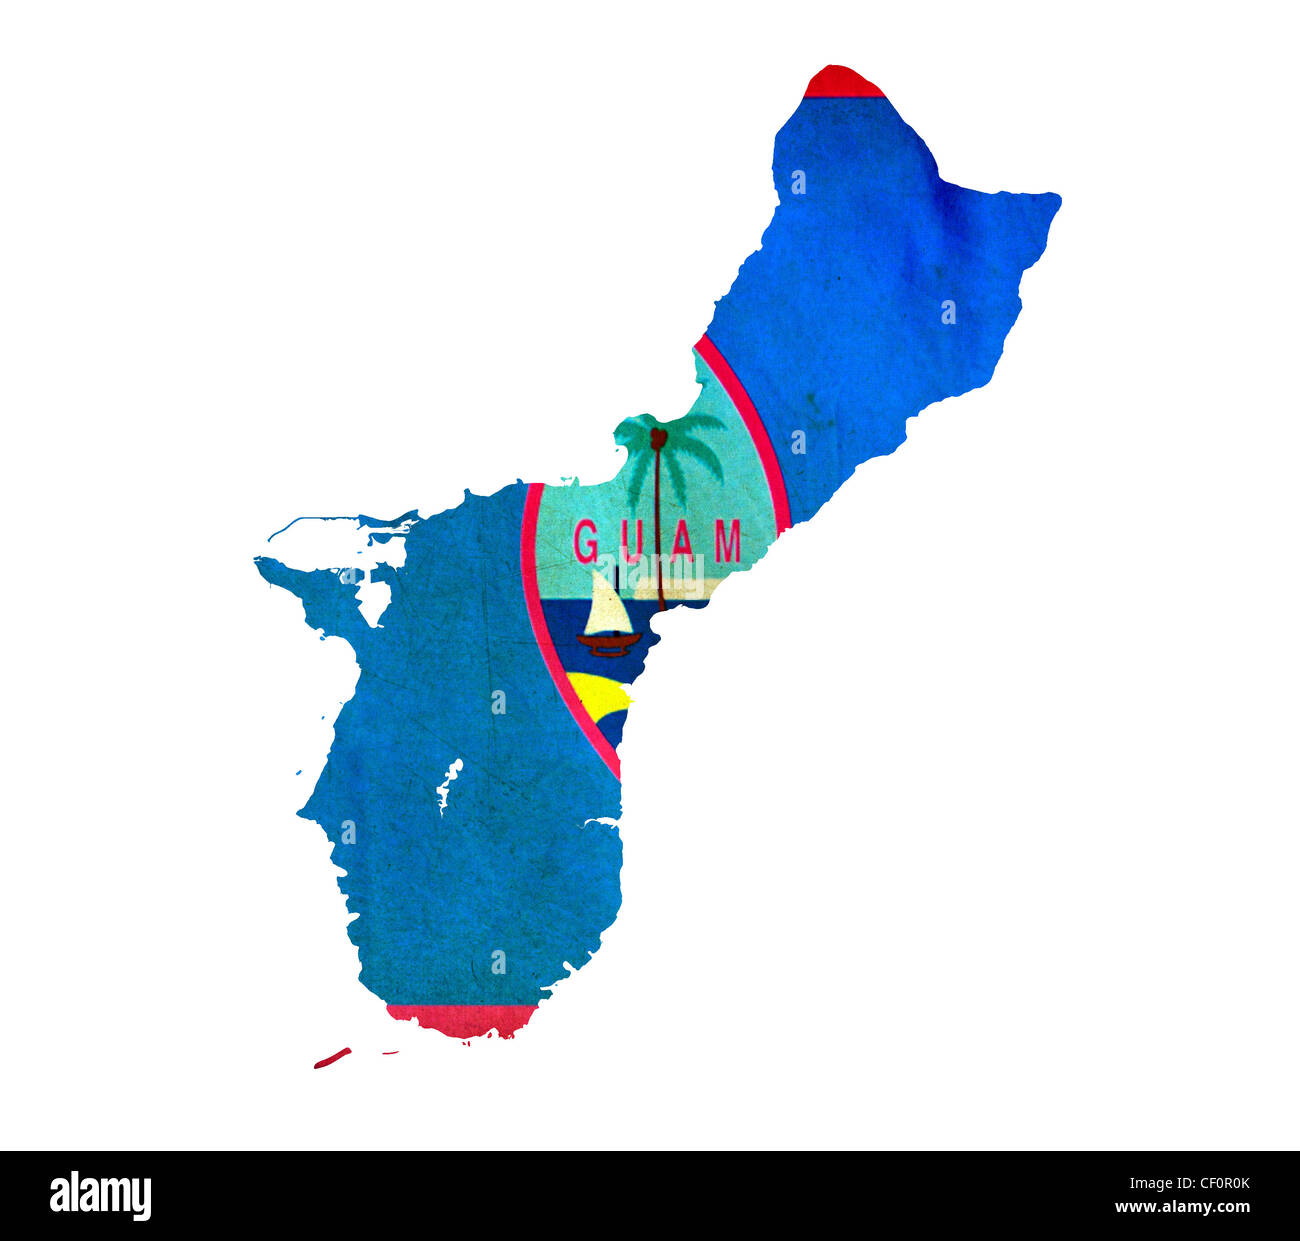 Map of Guam isolated Stock Photo: 43658627 - Alamy